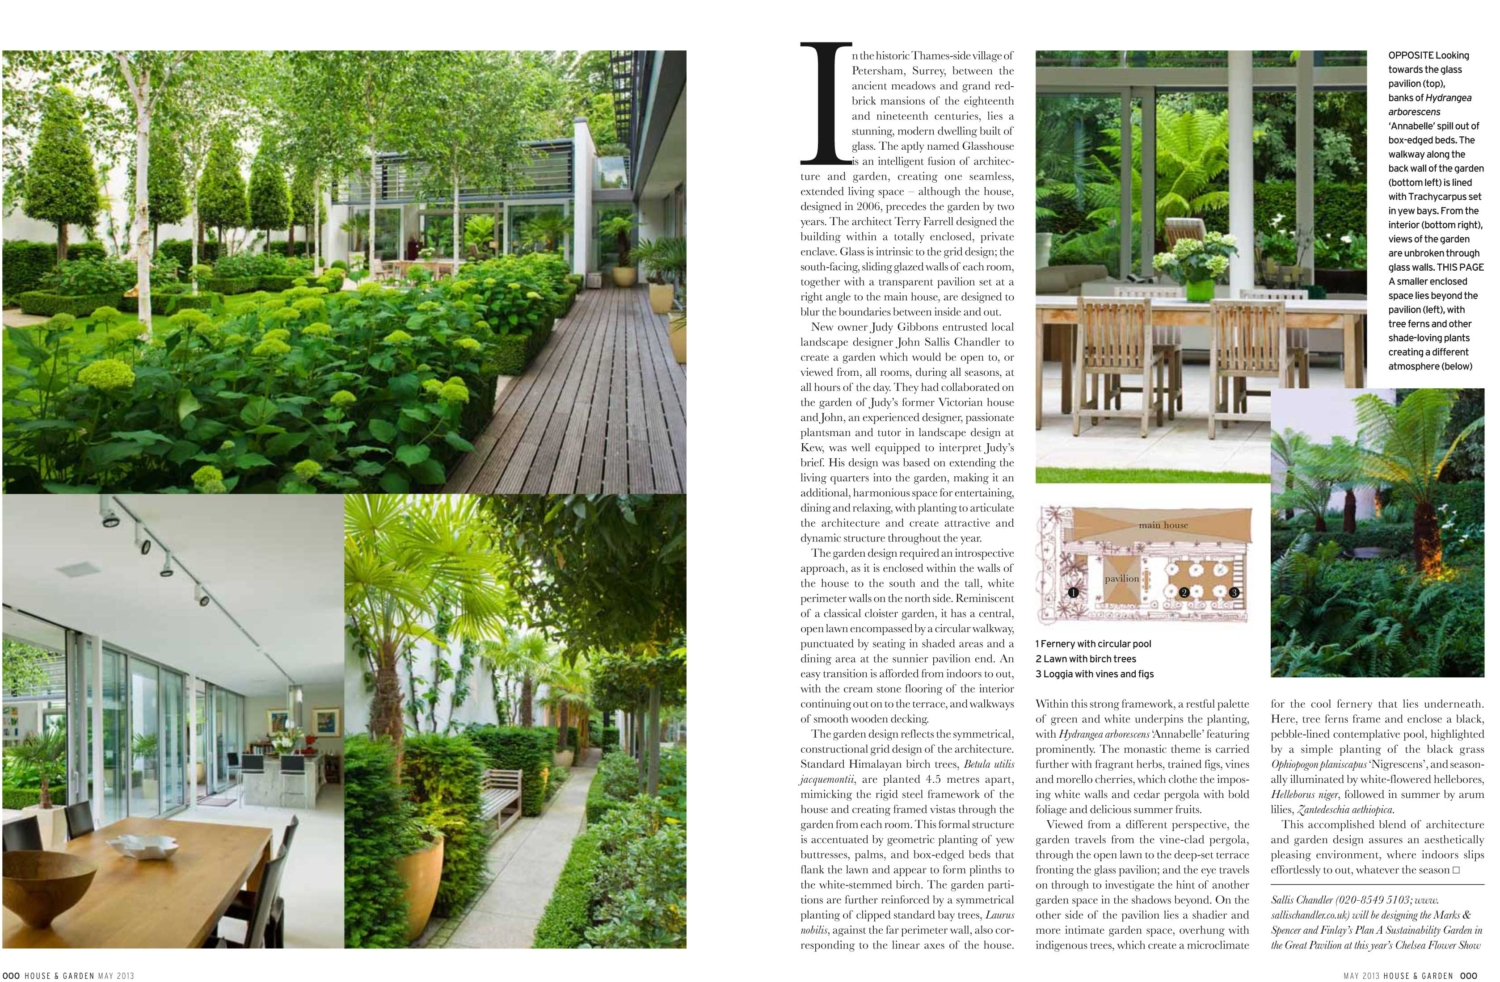 Sallis Chandler Landscape Designers and Gardeners featured in House and Garden Magazine